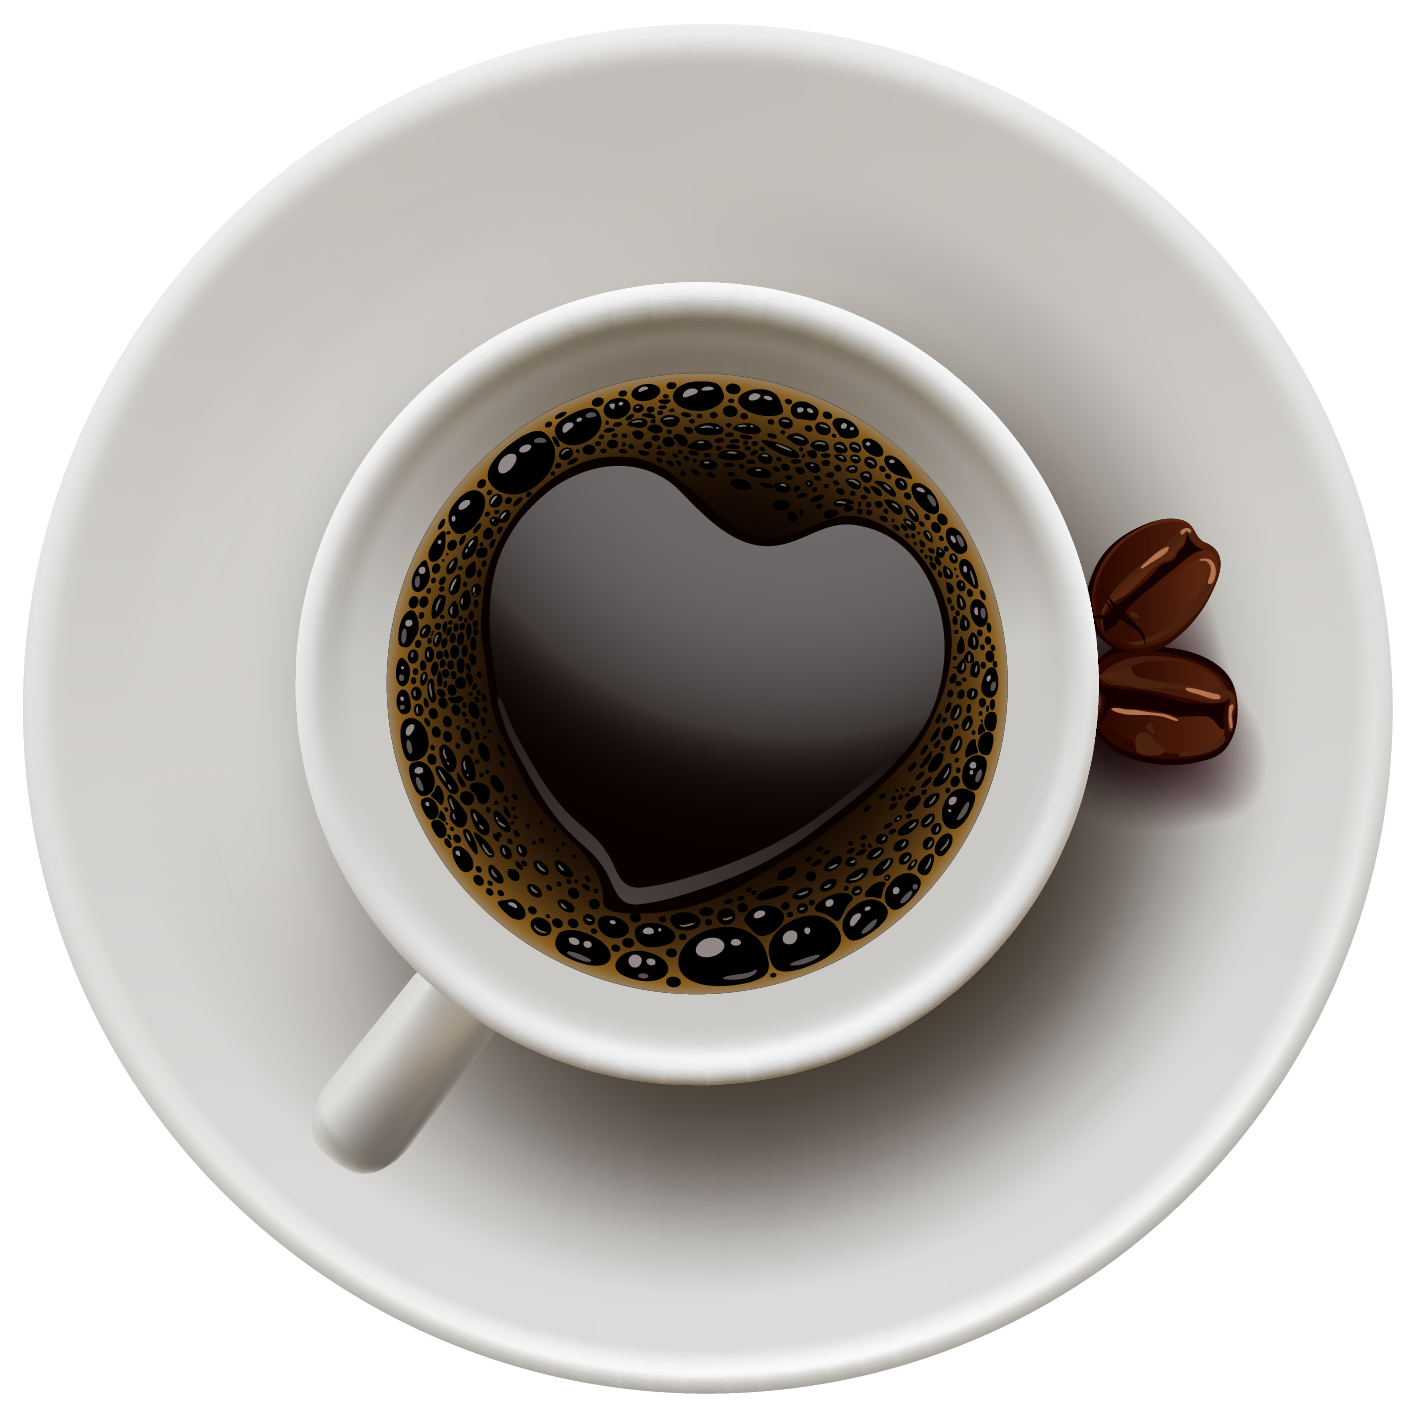 Coffee top view png. Cup best cups asuntospublicos